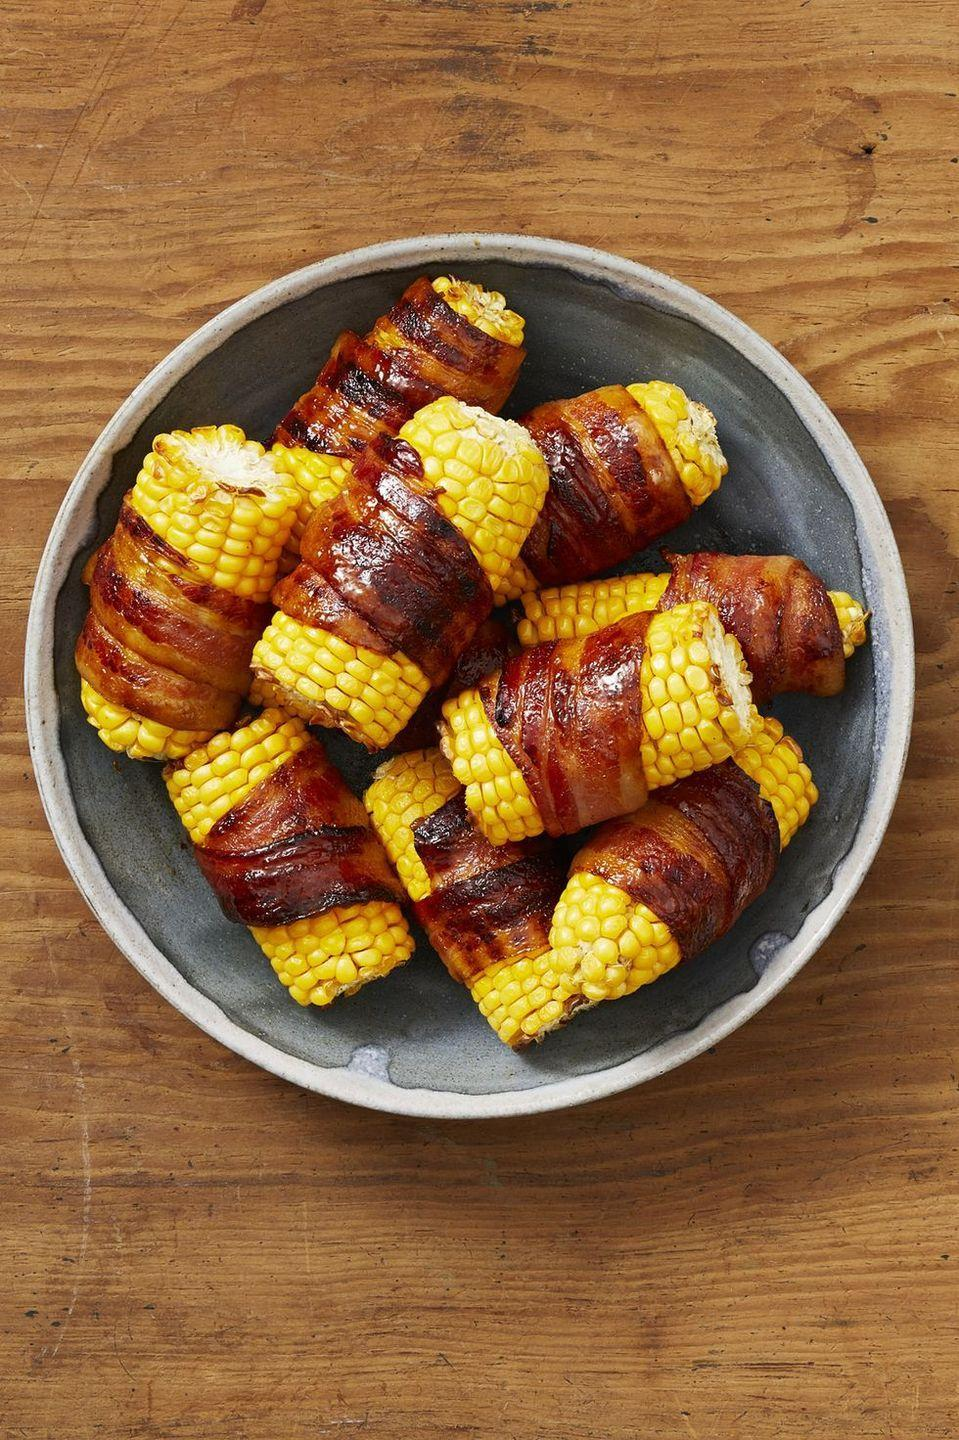 "<p>Crispy pieces of bacon wrapped around fresh corn will be the highlight of your summer barbecue.</p><p><strong><a href=""https://www.thepioneerwoman.com/food-cooking/recipes/a32905619/bacon-wrapped-corn-on-the-cob-recipe/"" rel=""nofollow noopener"" target=""_blank"" data-ylk=""slk:Get Ree's recipe."" class=""link rapid-noclick-resp"">Get Ree's recipe.</a></strong></p><p><strong><a class=""link rapid-noclick-resp"" href=""https://go.redirectingat.com?id=74968X1596630&url=https%3A%2F%2Fwww.walmart.com%2Fsearch%2F%3Fquery%3Dbasting%2Bbrush&sref=https%3A%2F%2Fwww.thepioneerwoman.com%2Ffood-cooking%2Fmeals-menus%2Fg35993911%2Fbest-corn-recipes%2F"" rel=""nofollow noopener"" target=""_blank"" data-ylk=""slk:SHOP BASTING BRUSHES"">SHOP BASTING BRUSHES</a><br></strong></p>"